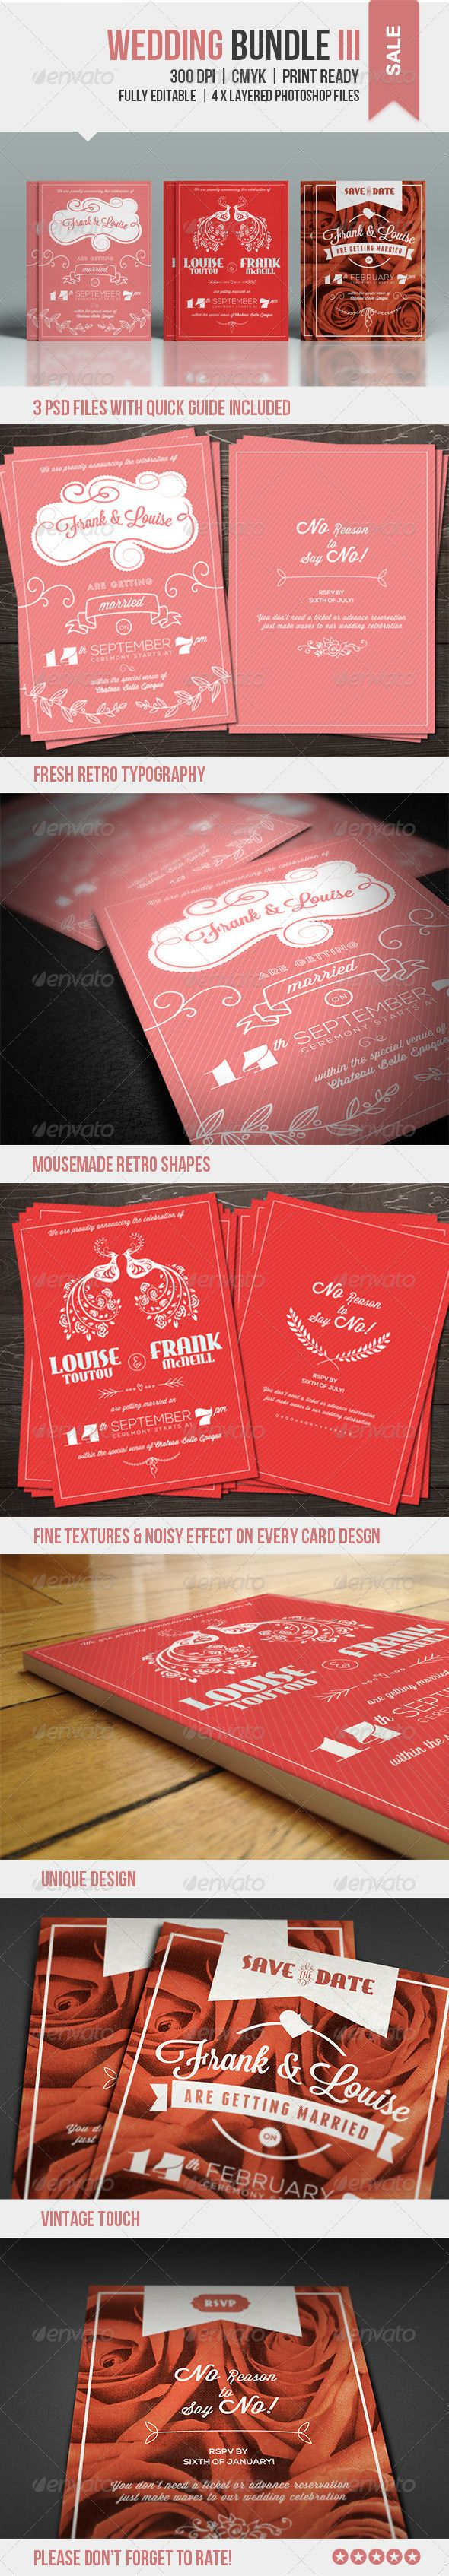 Wedding Bundle Card Print Template PSD | More Info: http://graphicriver.net/item/wedding-bundle-iii/7785419?WT.ac=category_thumb&WT.z_author=lavie1blonde&ref=ksioks